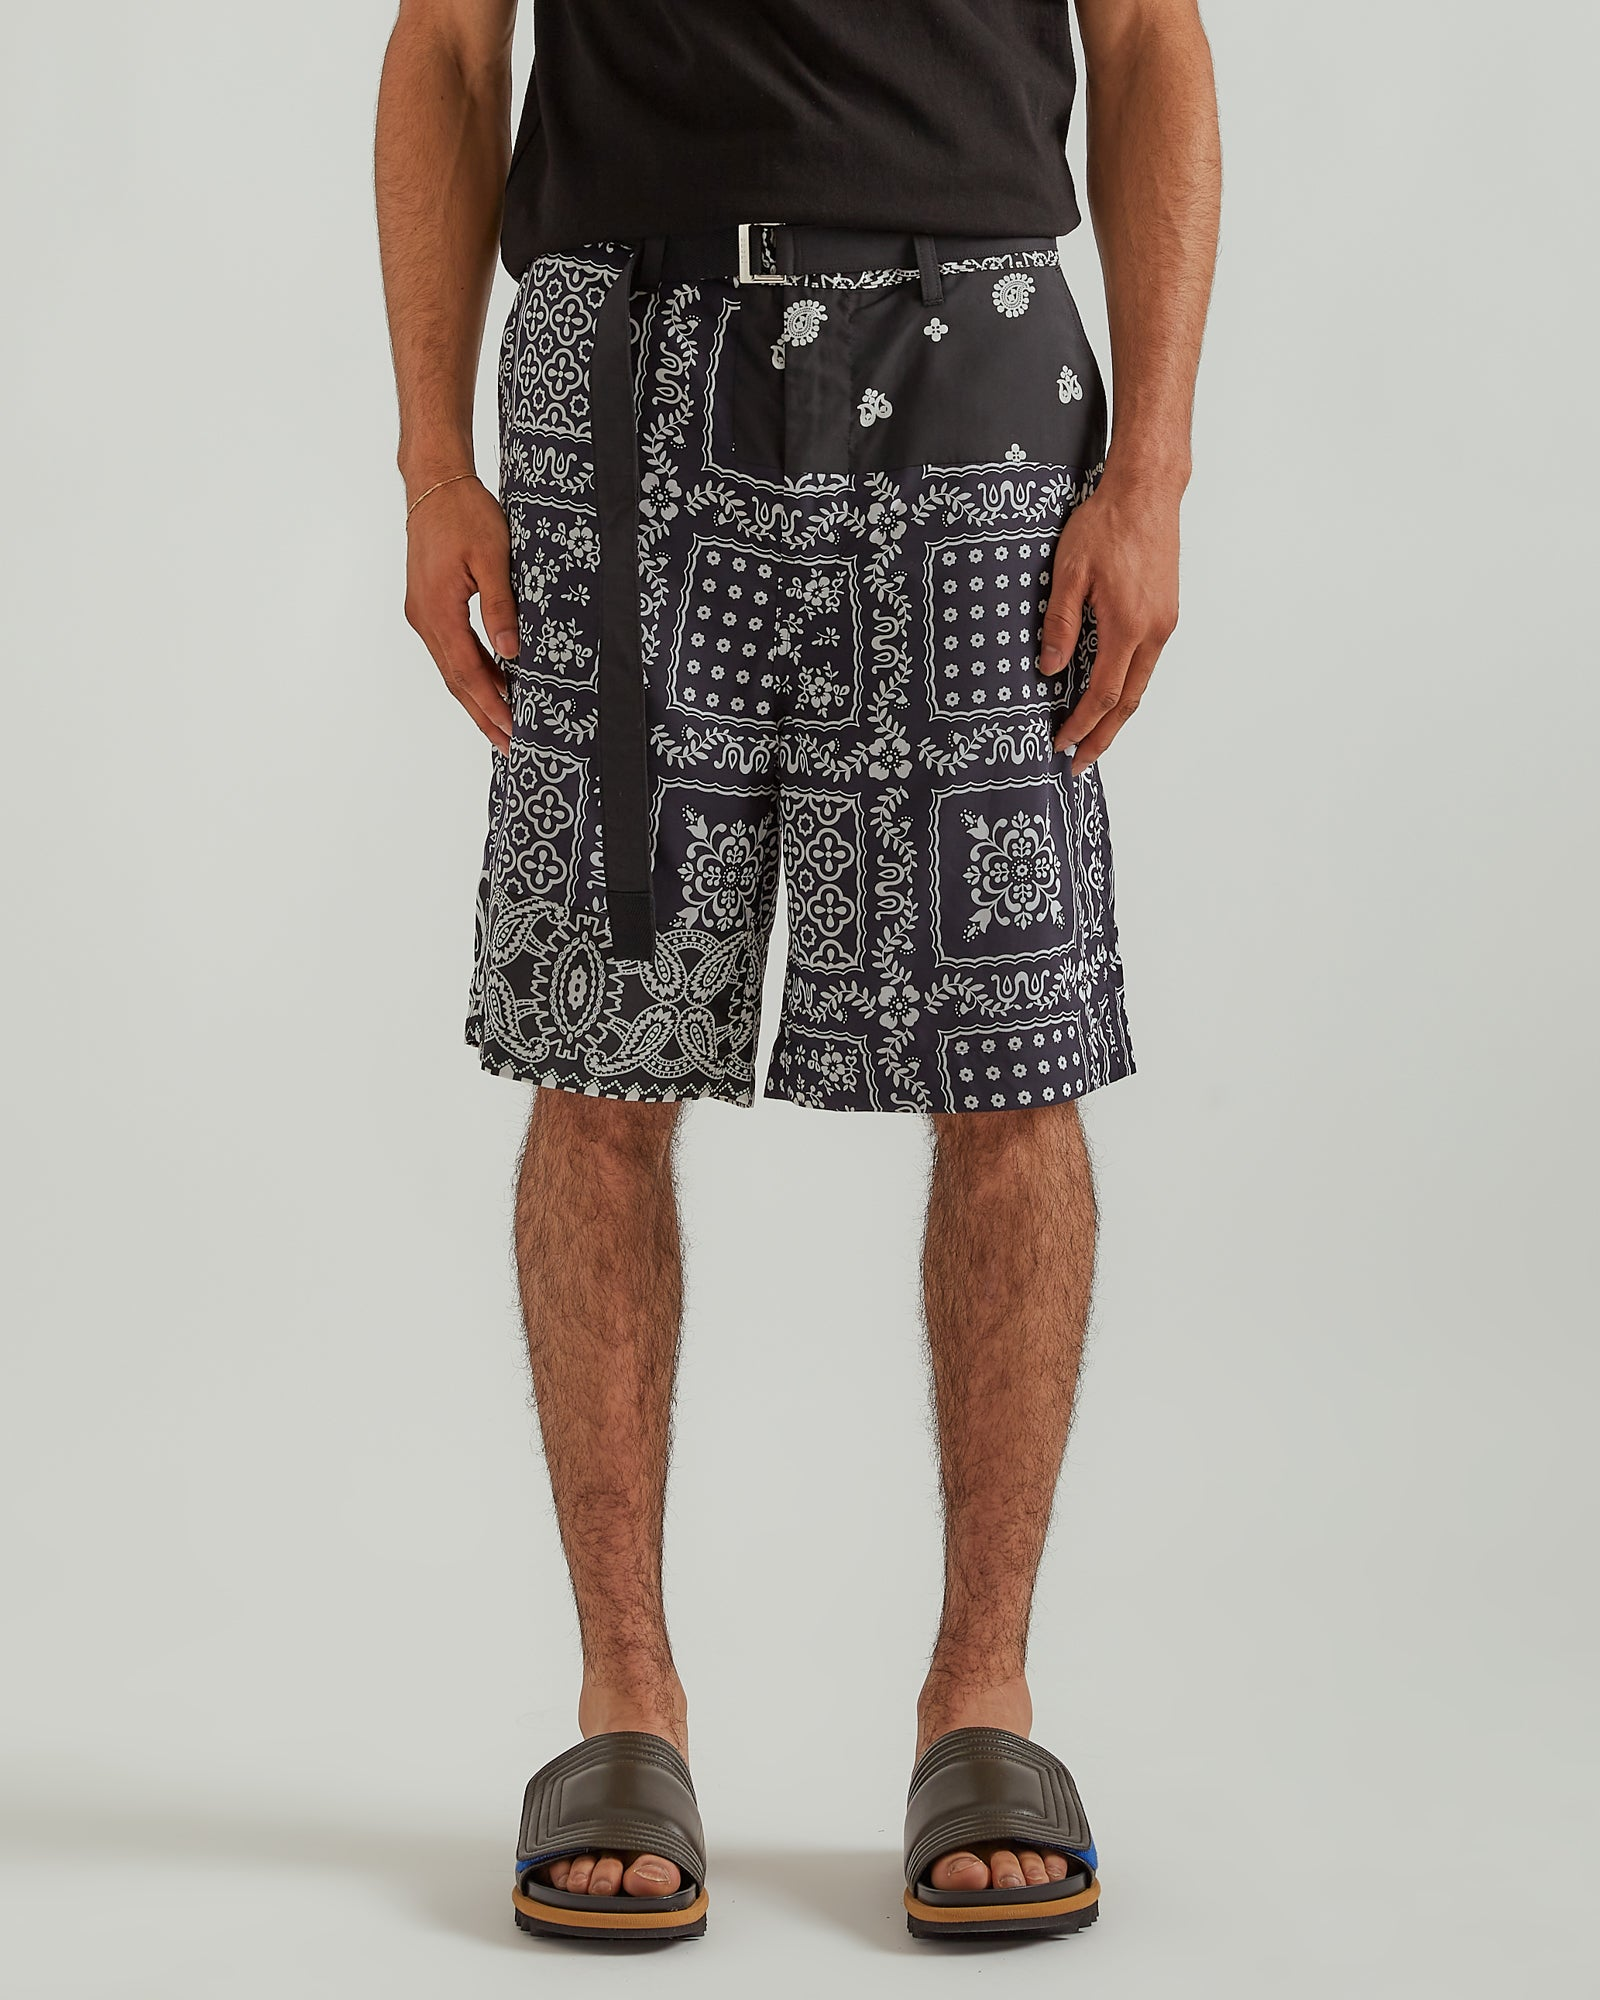 Archive Mix Print Shorts in Black/Navy